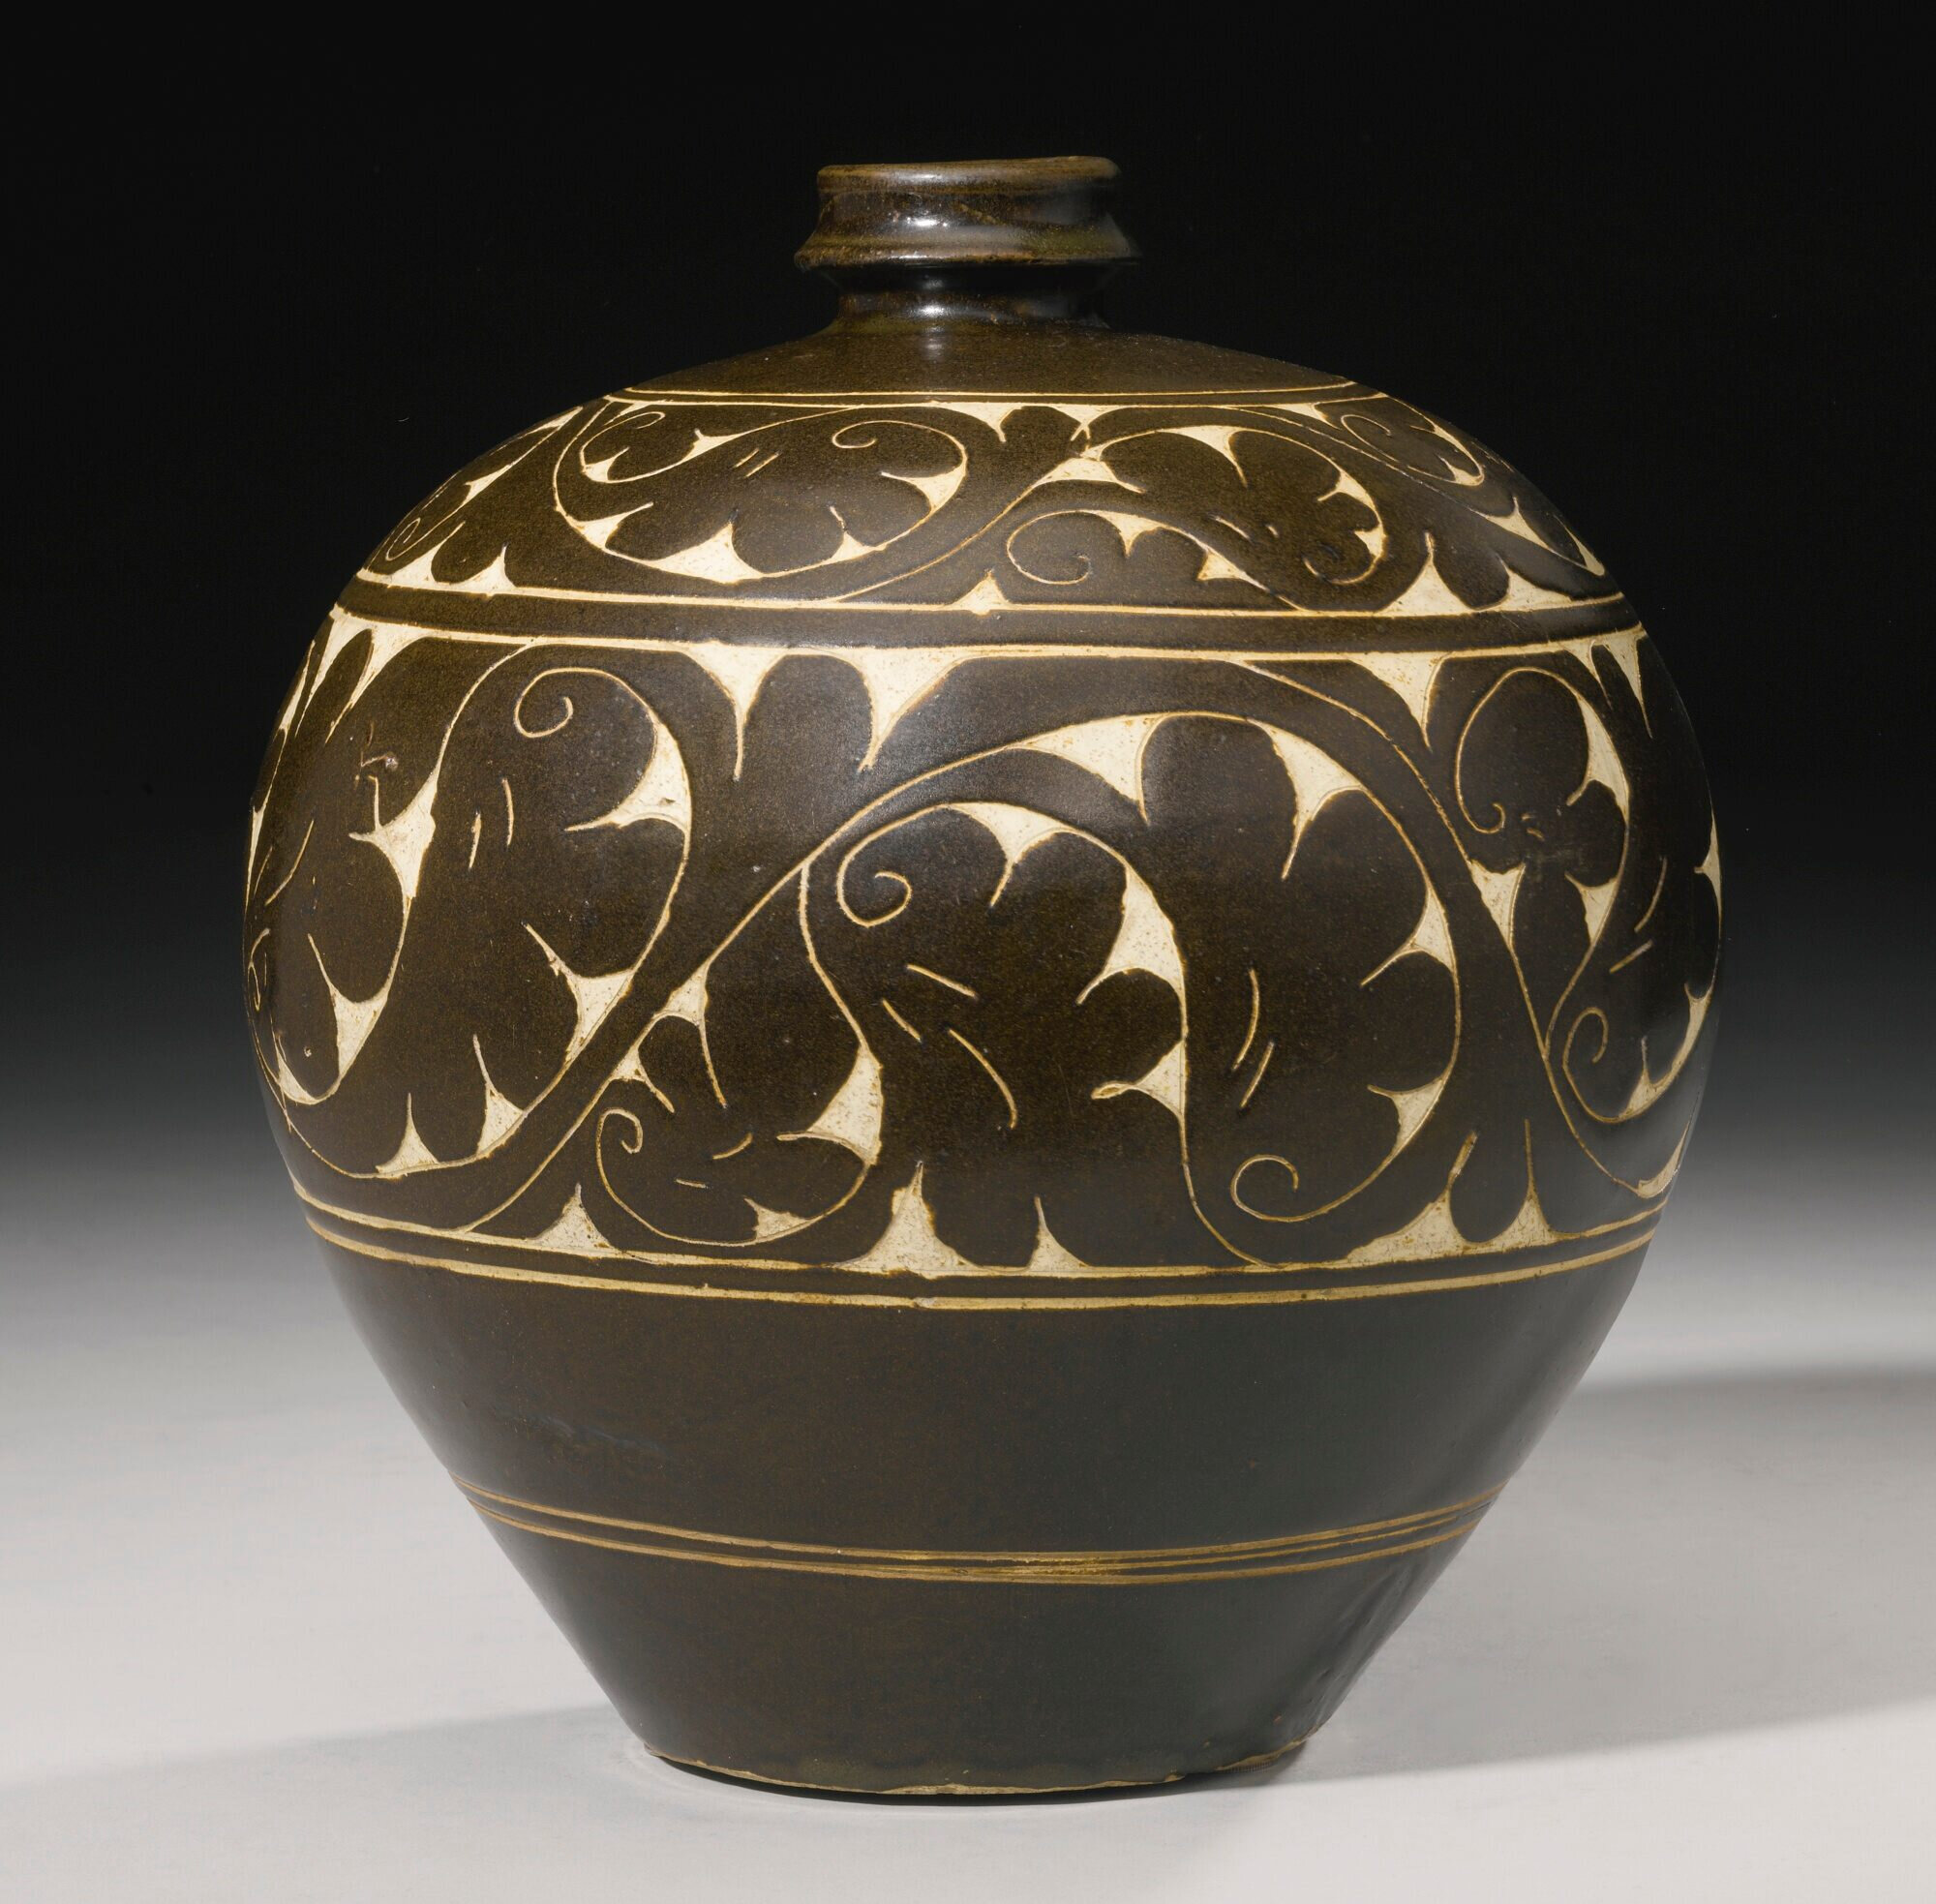 An impressive 'Cizhou' sgraffito brown-glazed globular vase, Jin dynasty (1115-1234)